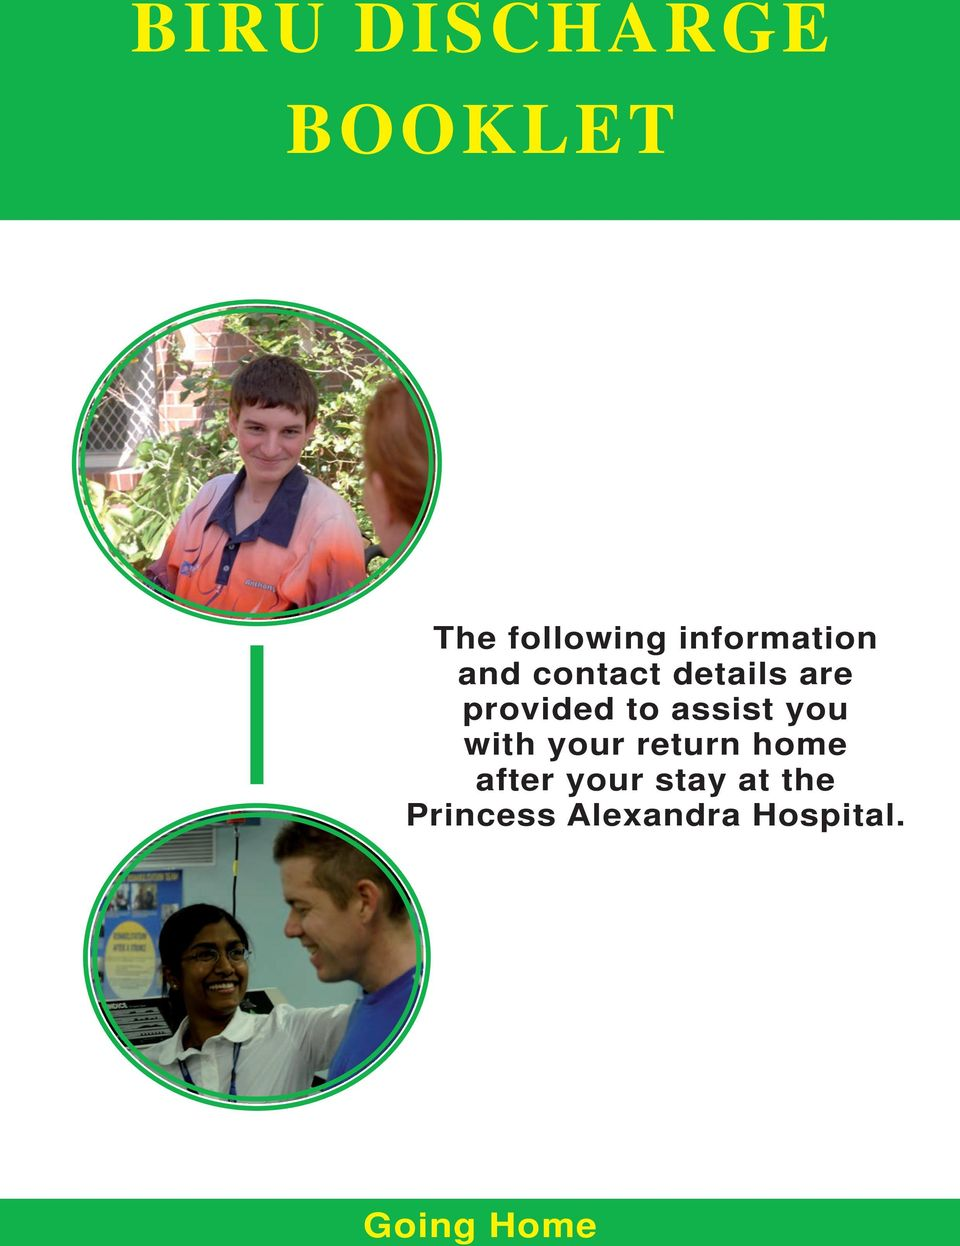 to assist you with your return home after